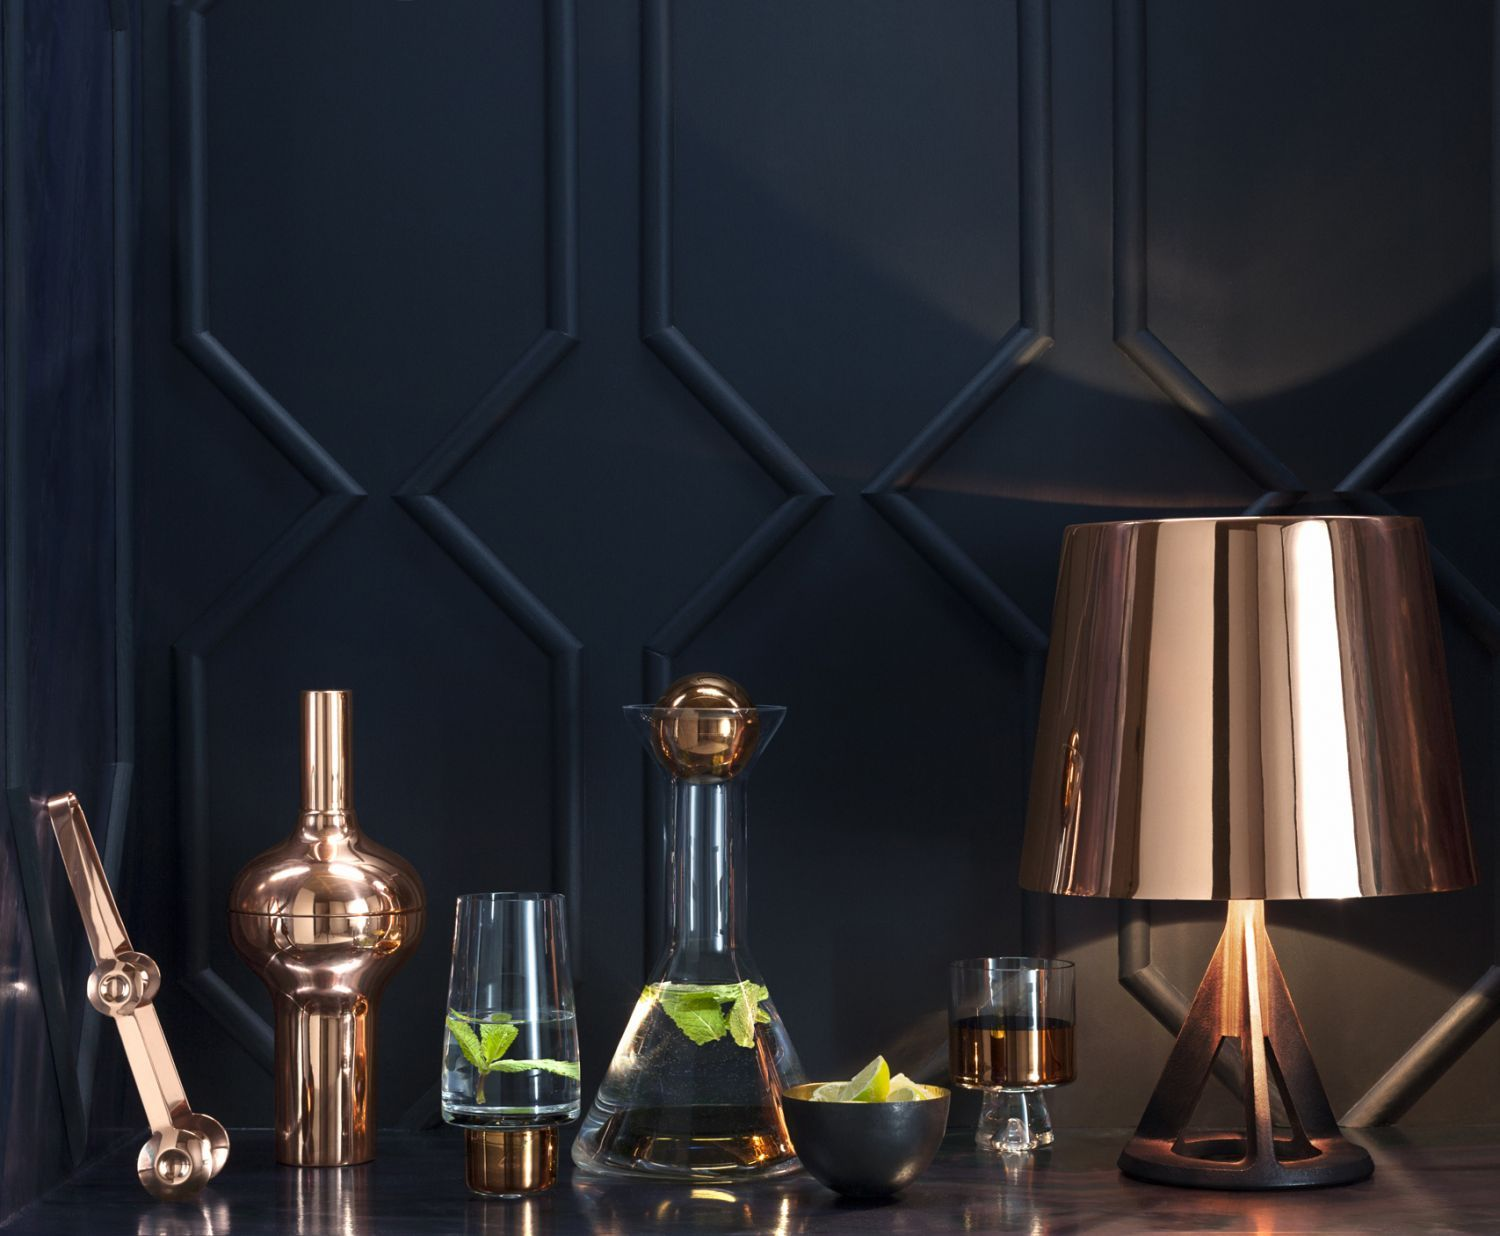 P A Robust Table Standing Light Made Of Brass The Base Collection Combines A Smooth Finished Brass Or A Highly Polishe Brass Wall Light Light Table Tom Dixon